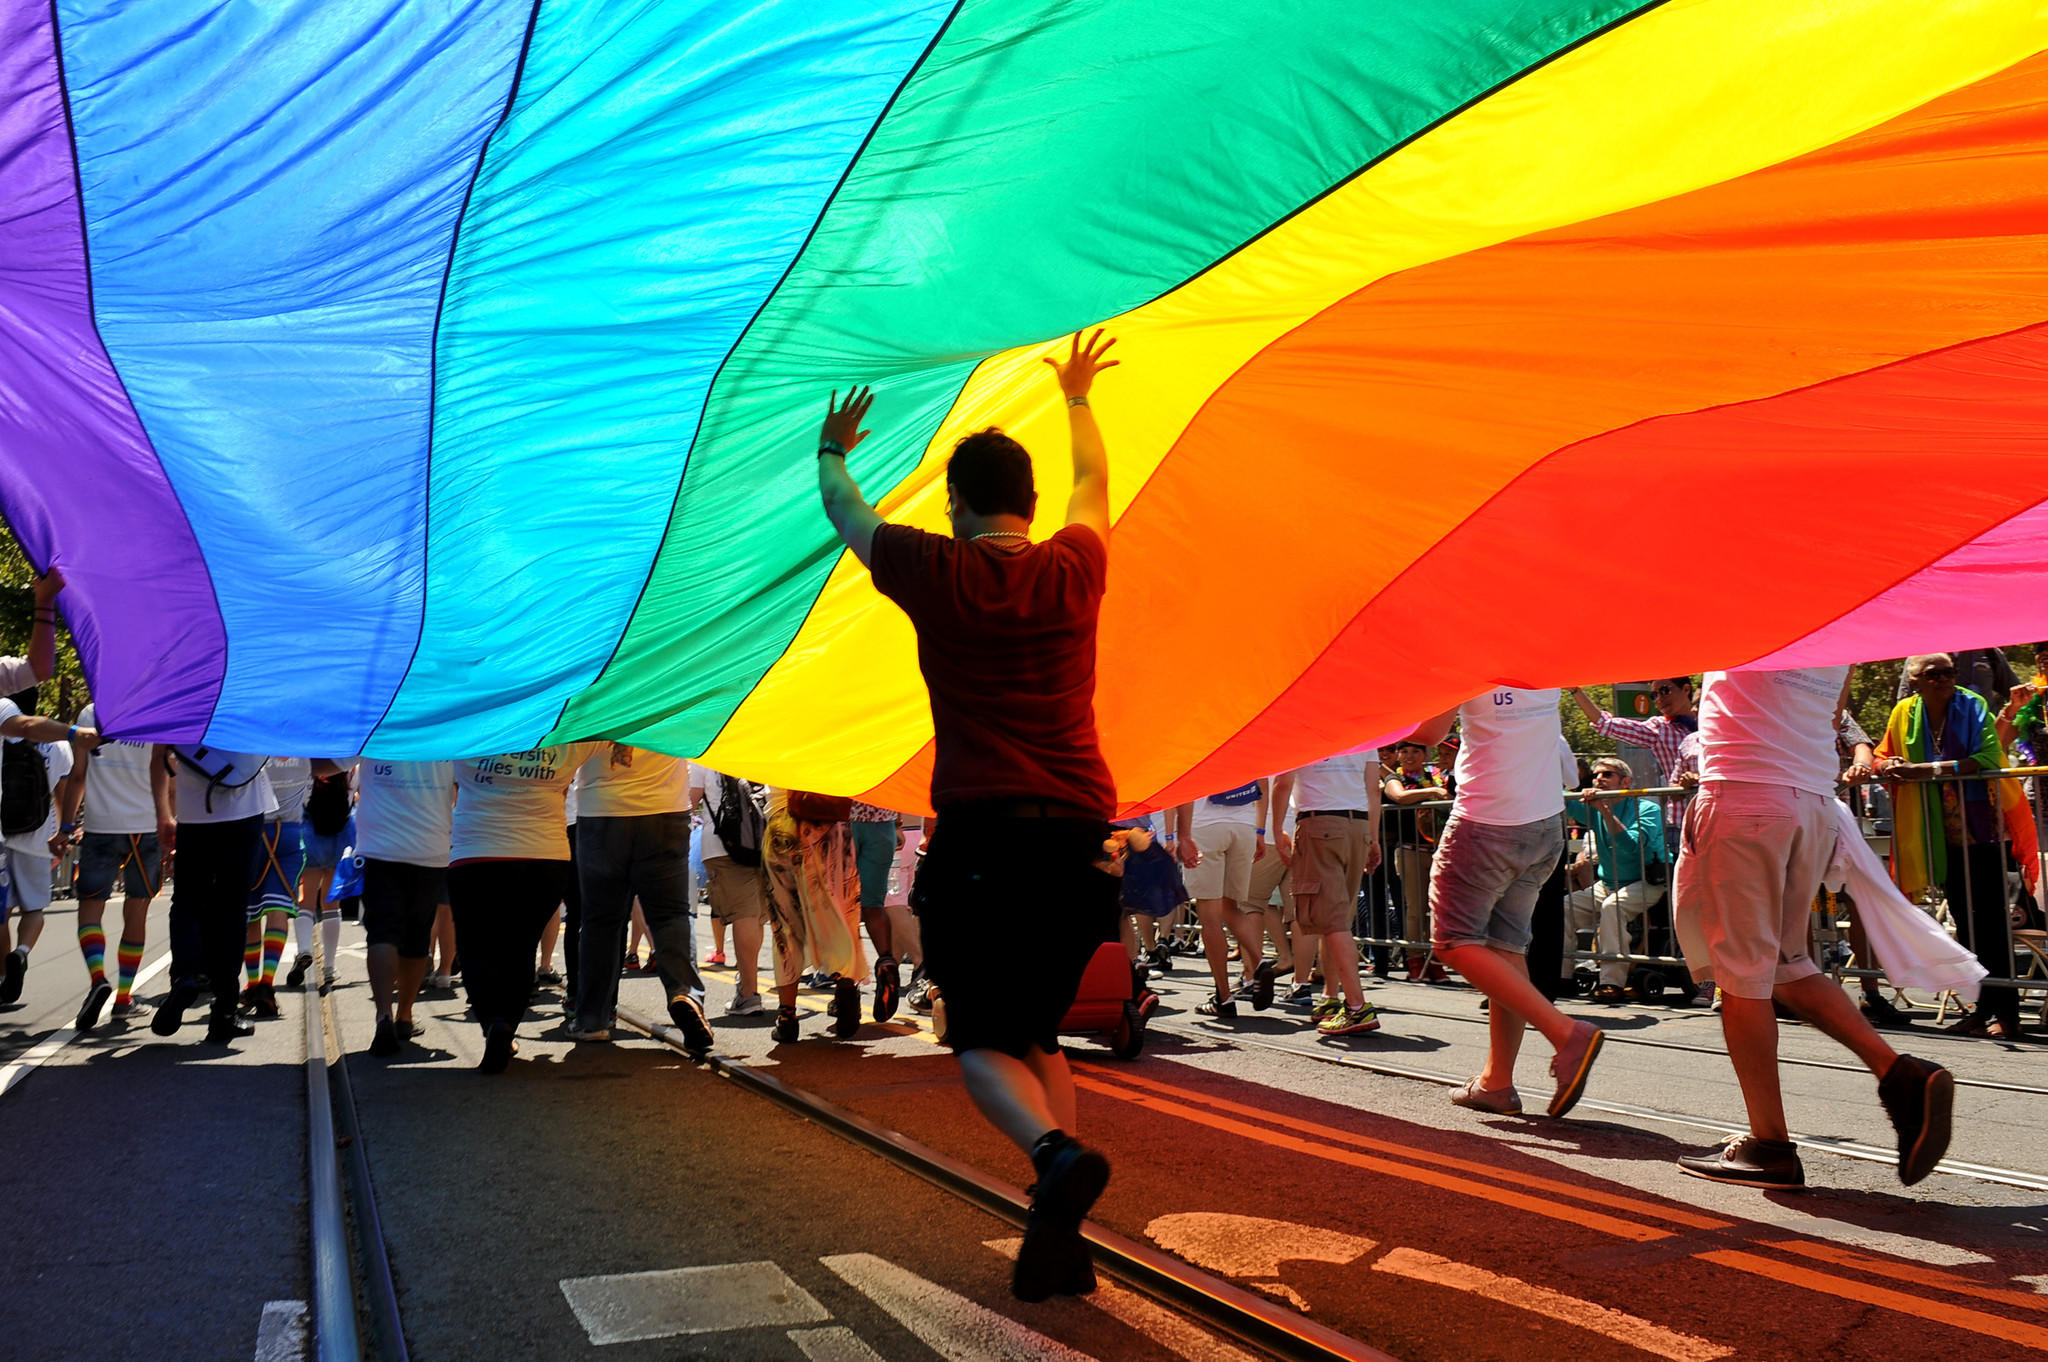 Participants carry a rainbow flag during the annual Gay Pride parade in San Francisco.